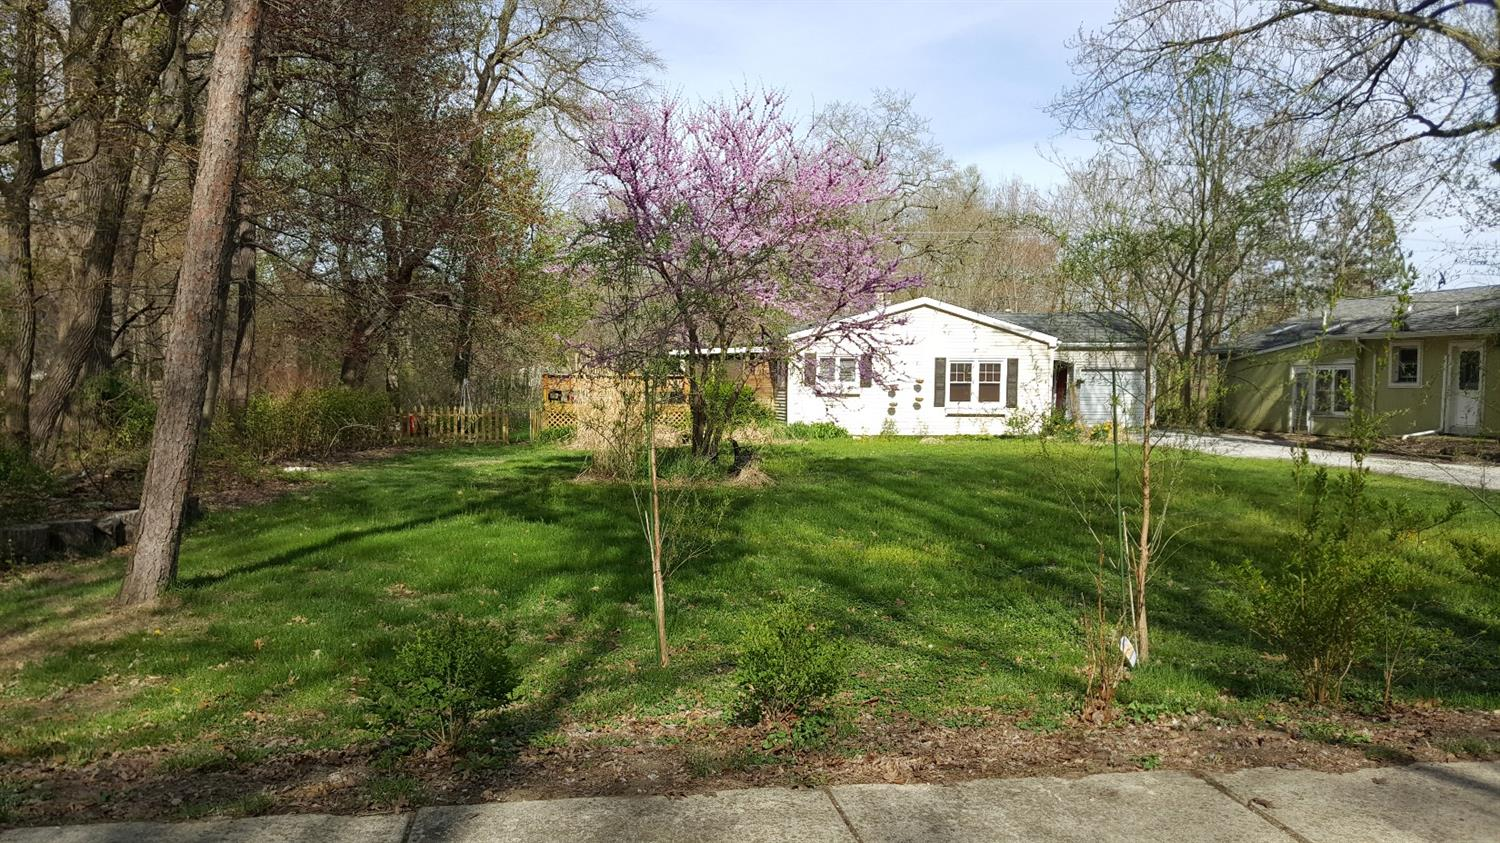 215 SOUTH BROADWAY AVENUE, BEVERLY SHORES, IN 46301